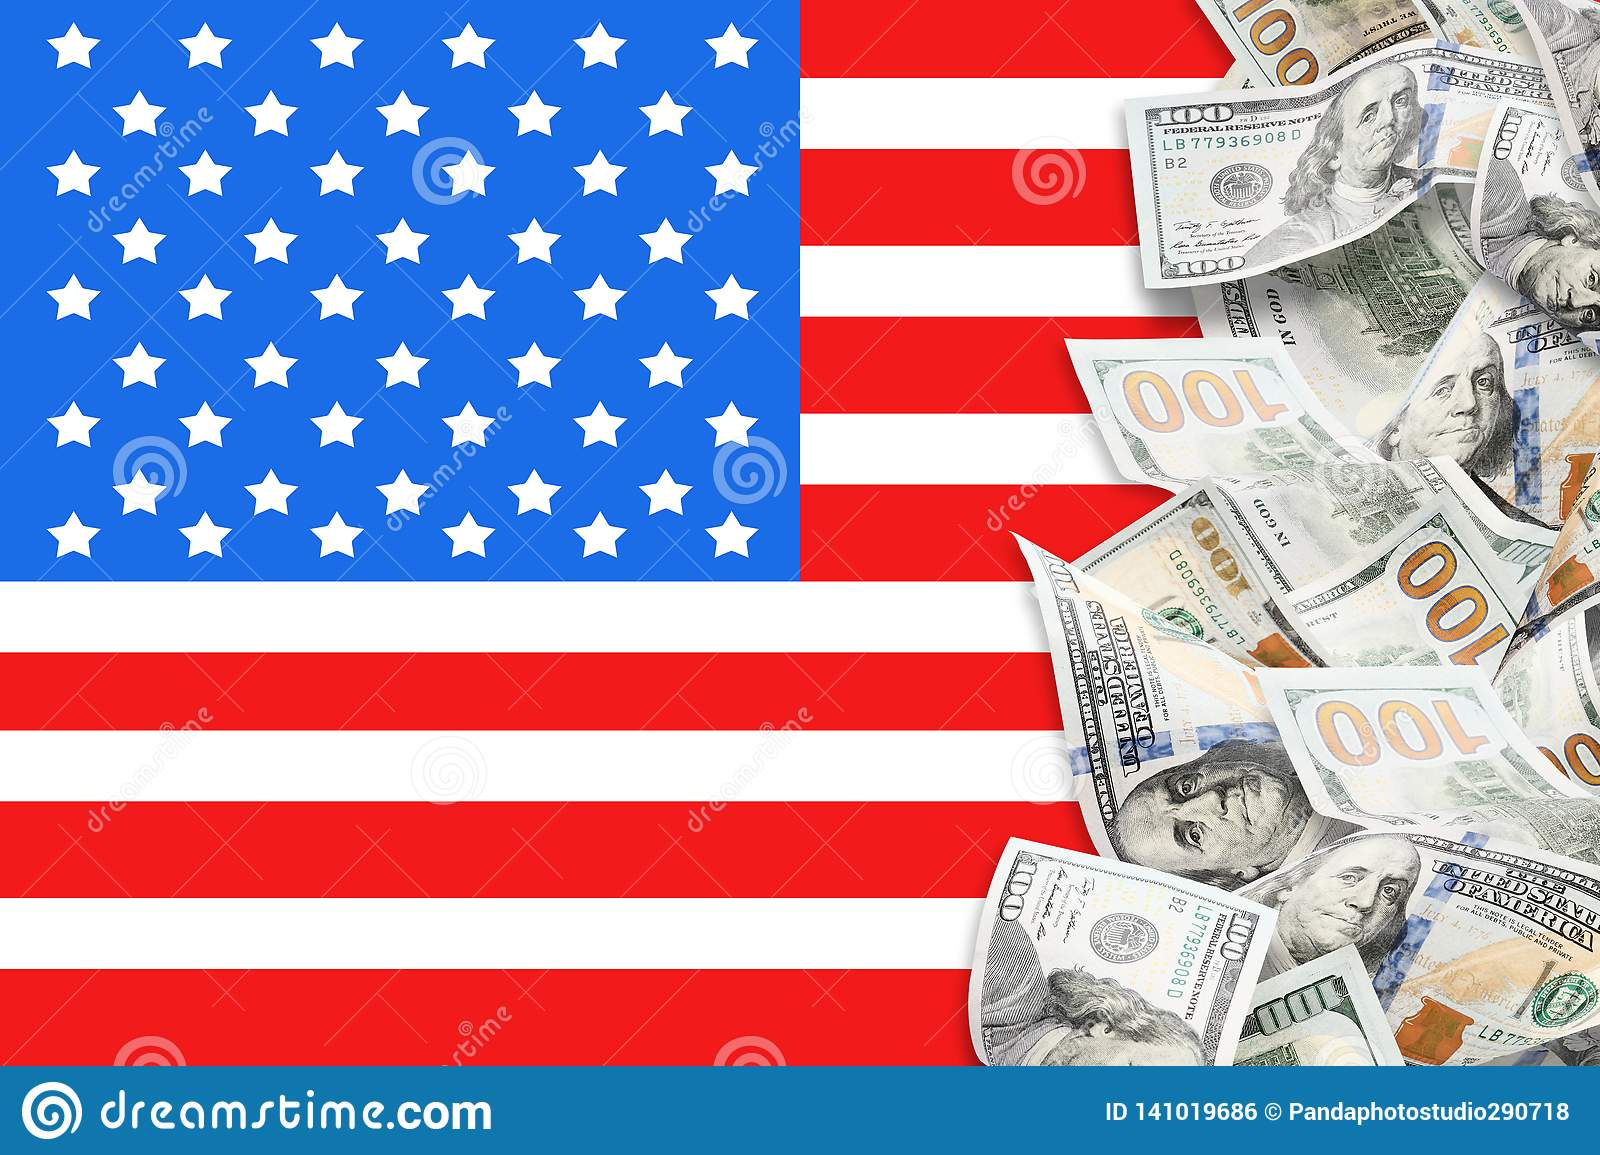 A lot of dollars and american flag